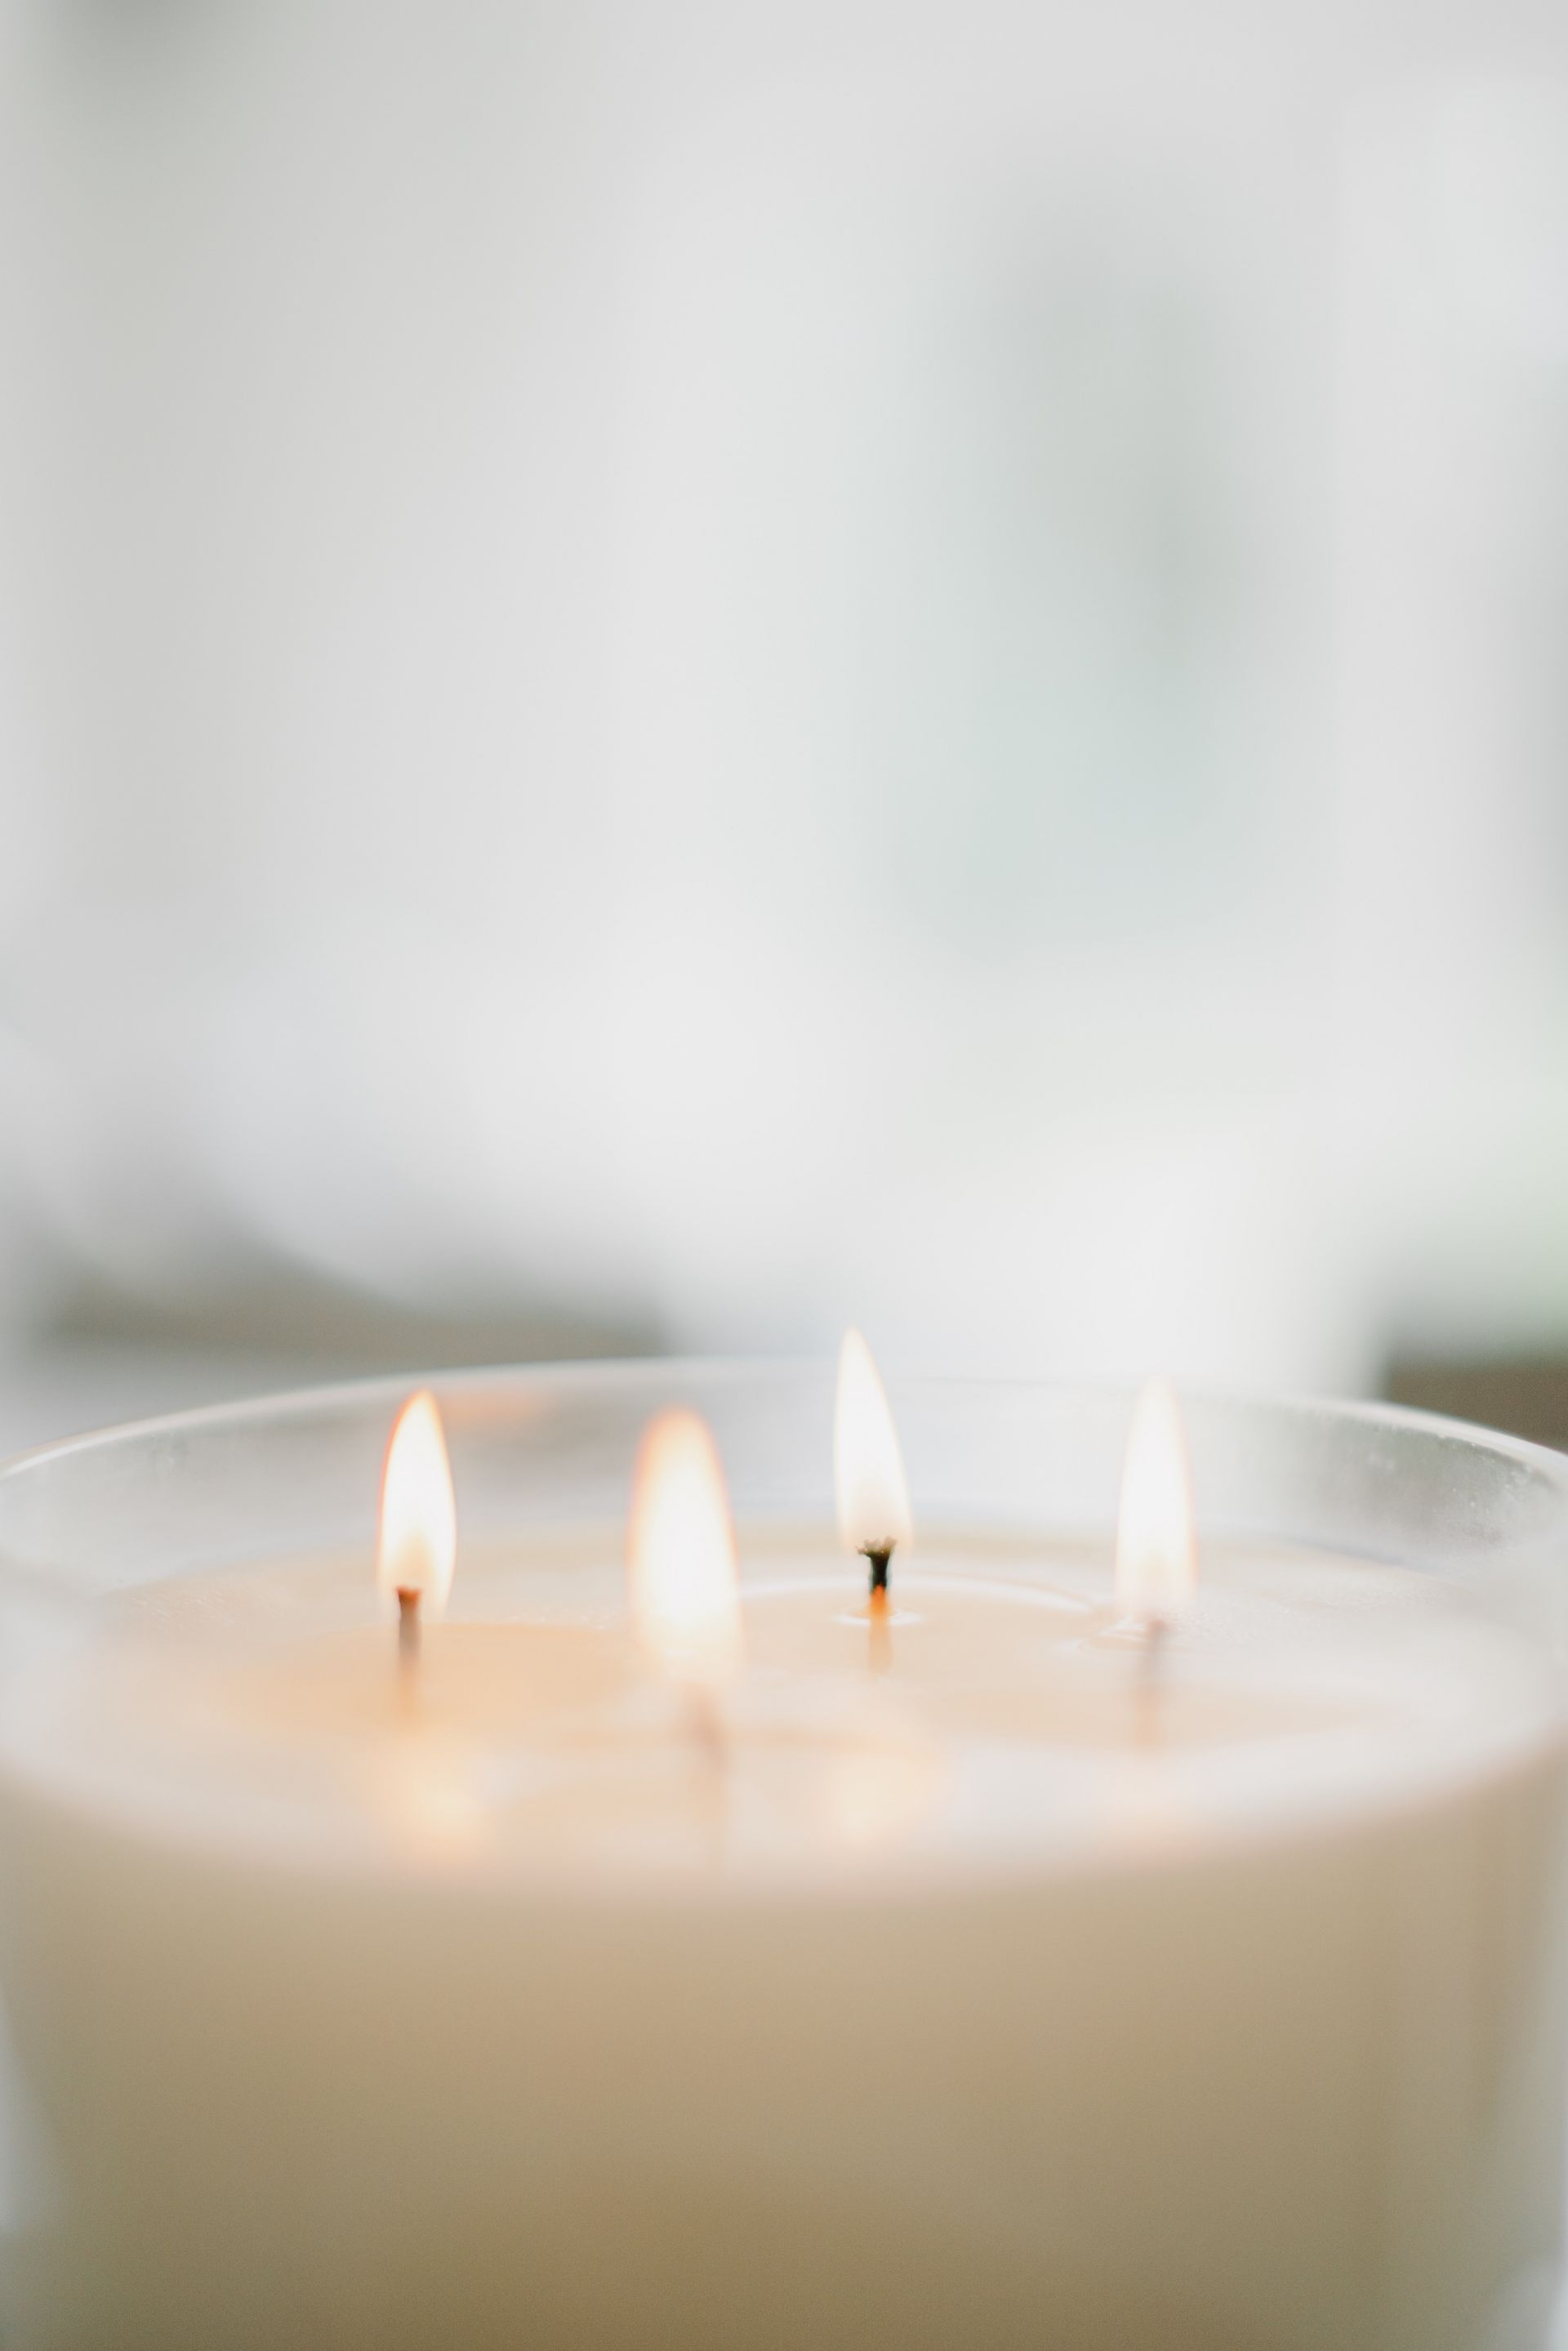 20190318-Candle-16